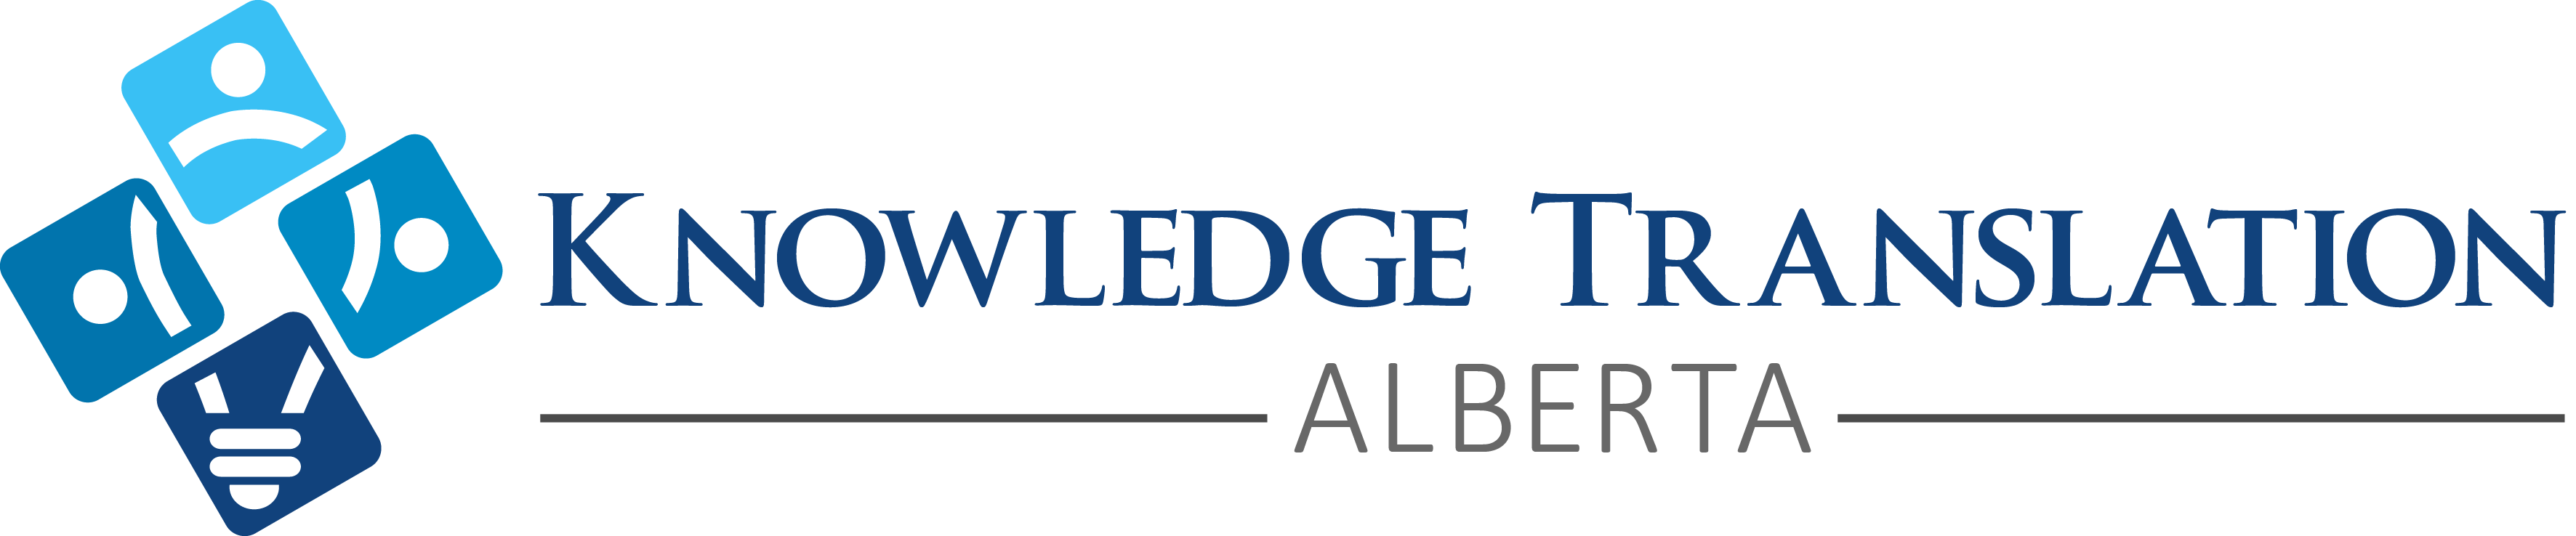 Knowledge Translation Alberta logo